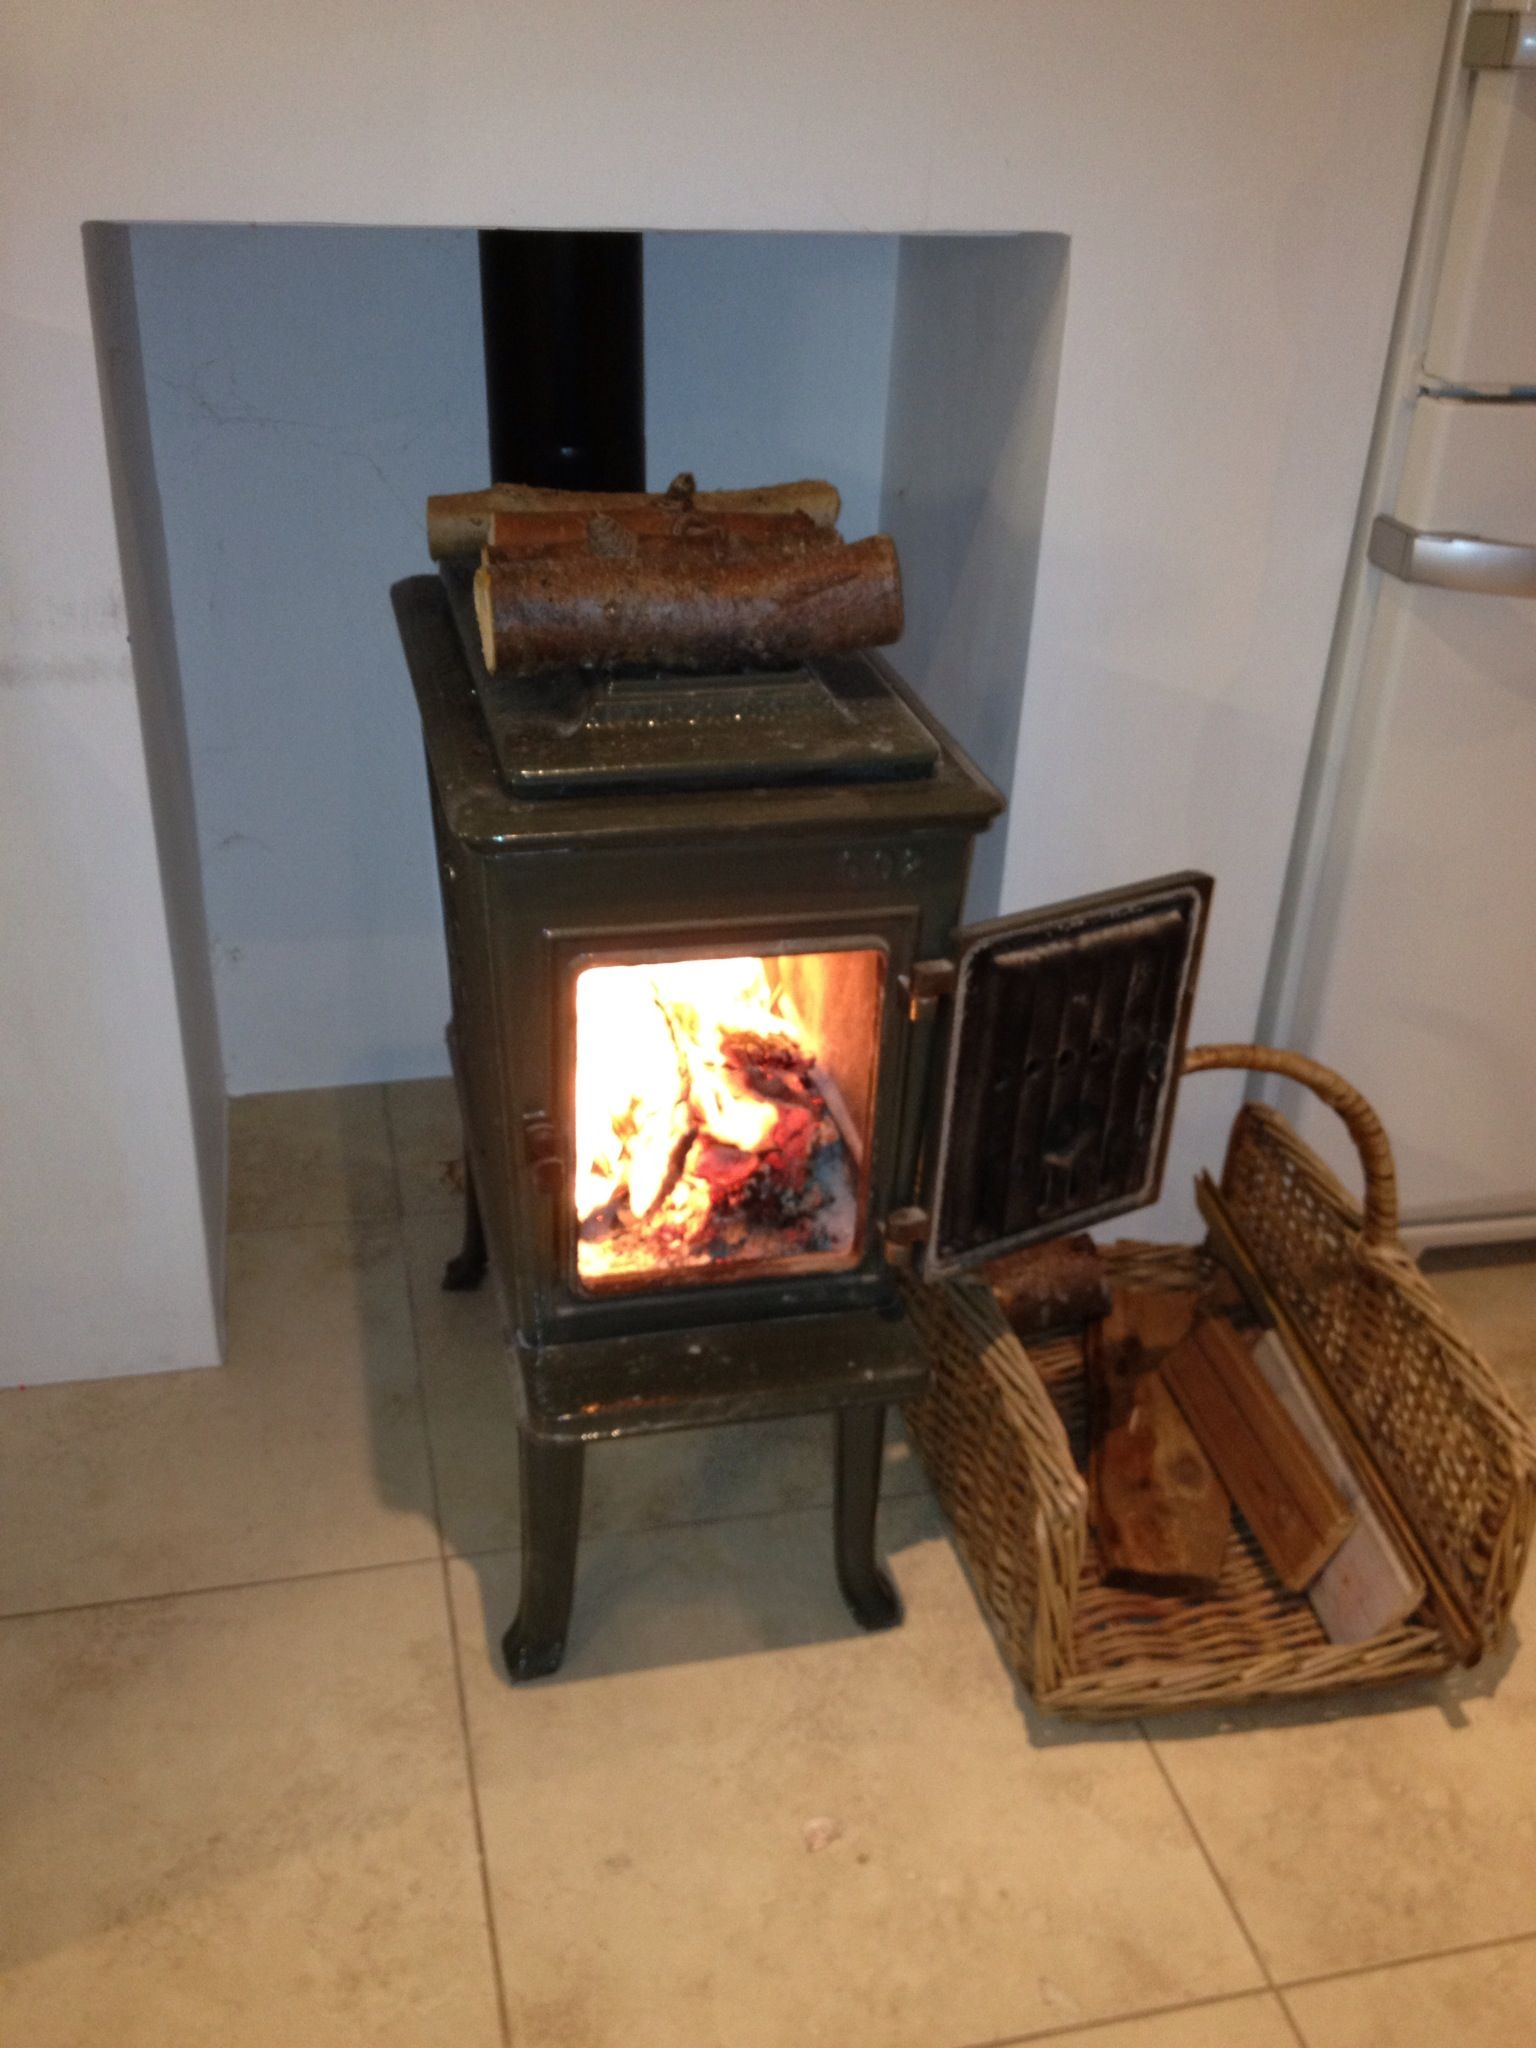 Haas+sohn Kaminofen Varese Test Jotul F602 Wood Burning Stove Makes Winter Bearable Fire Pit